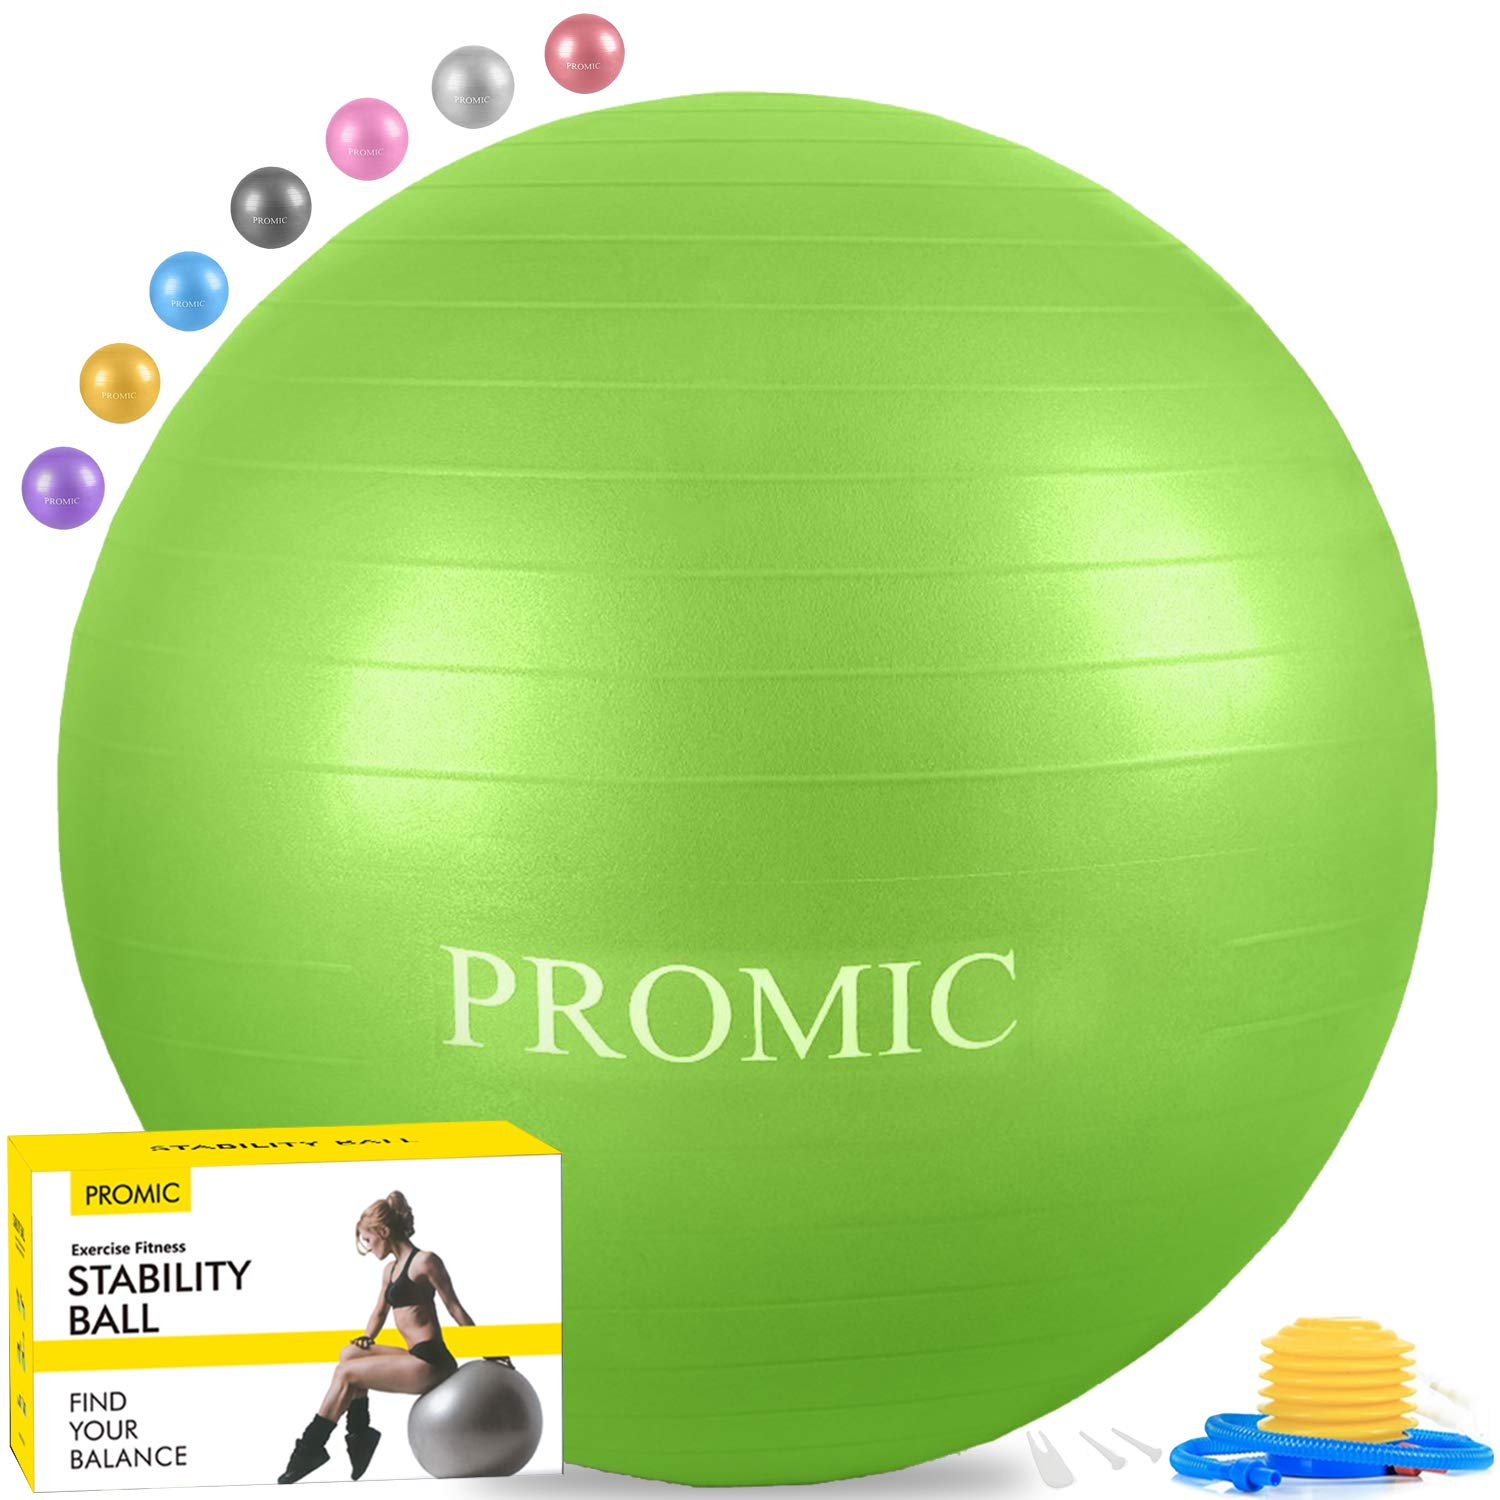 PROMIC Exercise Ball (45 cm) Children's Balance Ball with Foot Pump - Alternative Classroom Seating, Flexible School Chair, Active Classroom Desk Seating, Green by PROMIC